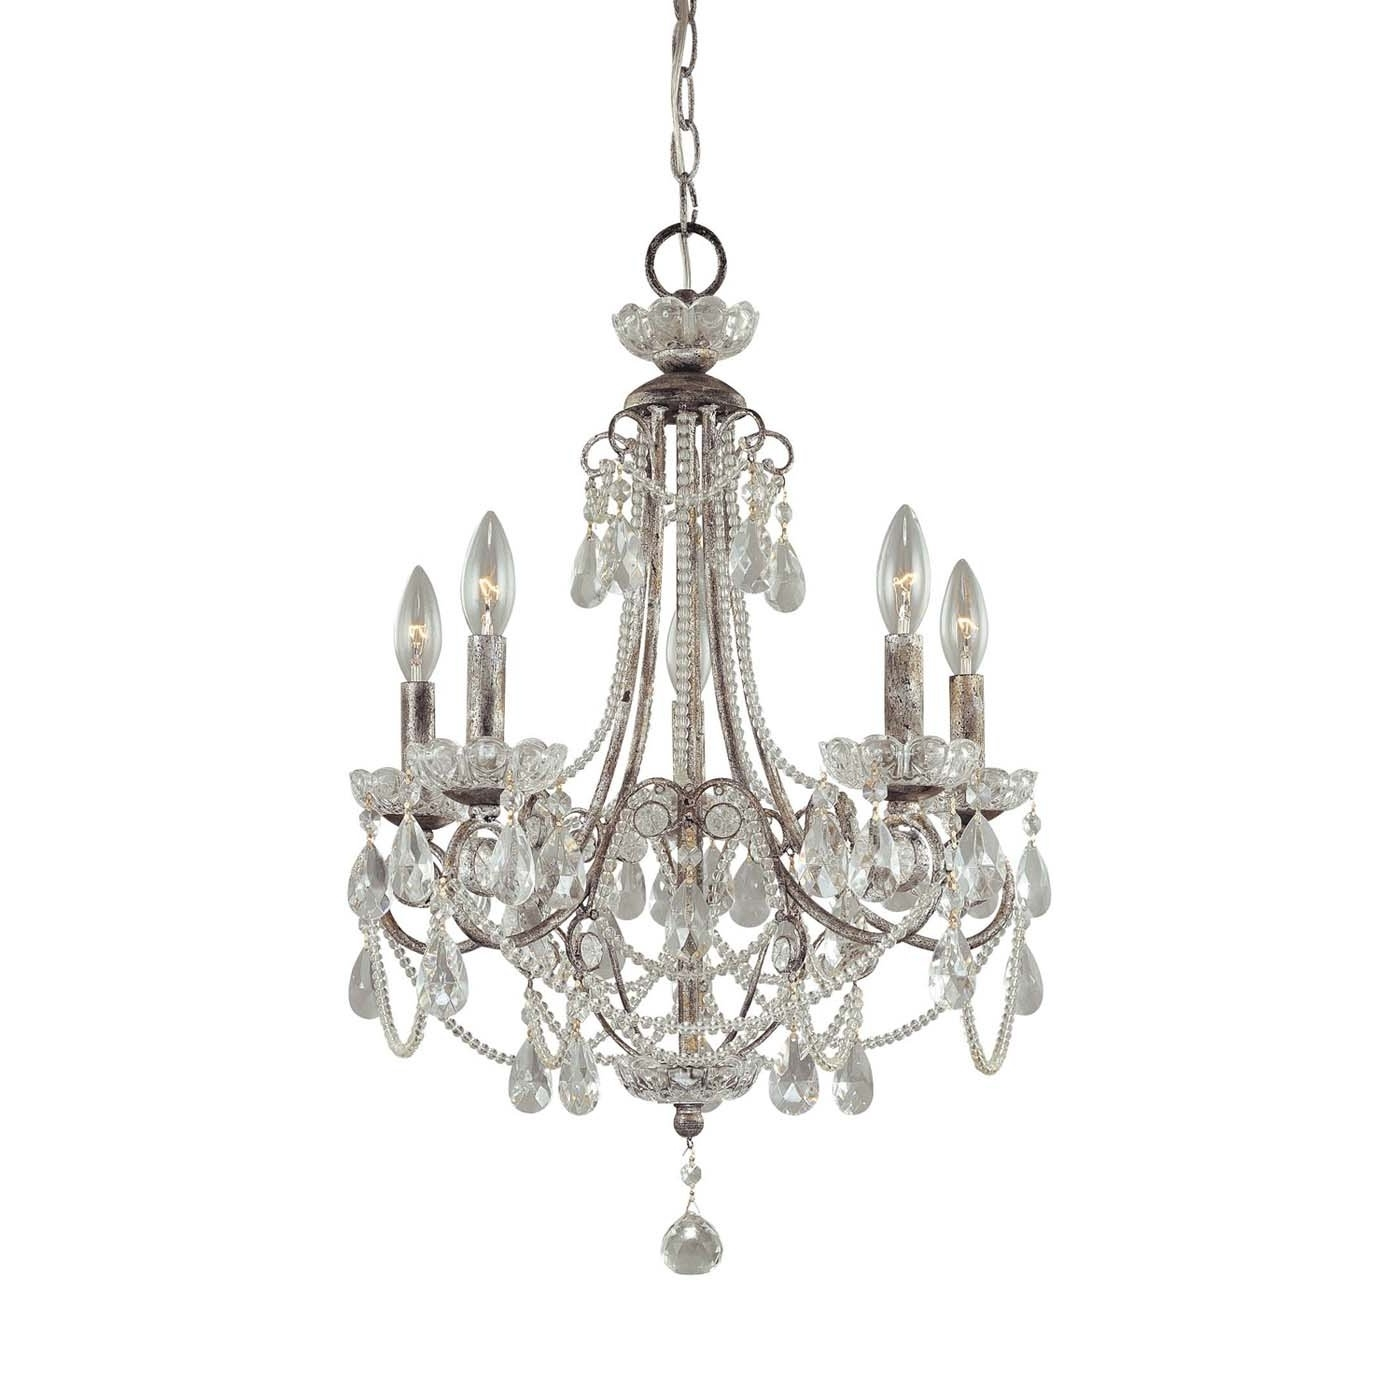 Chandelier: Extraordinary Small Chandeliers For Bedrooms Mini In Well Liked 4 Light Crystal Chandeliers (View 12 of 15)